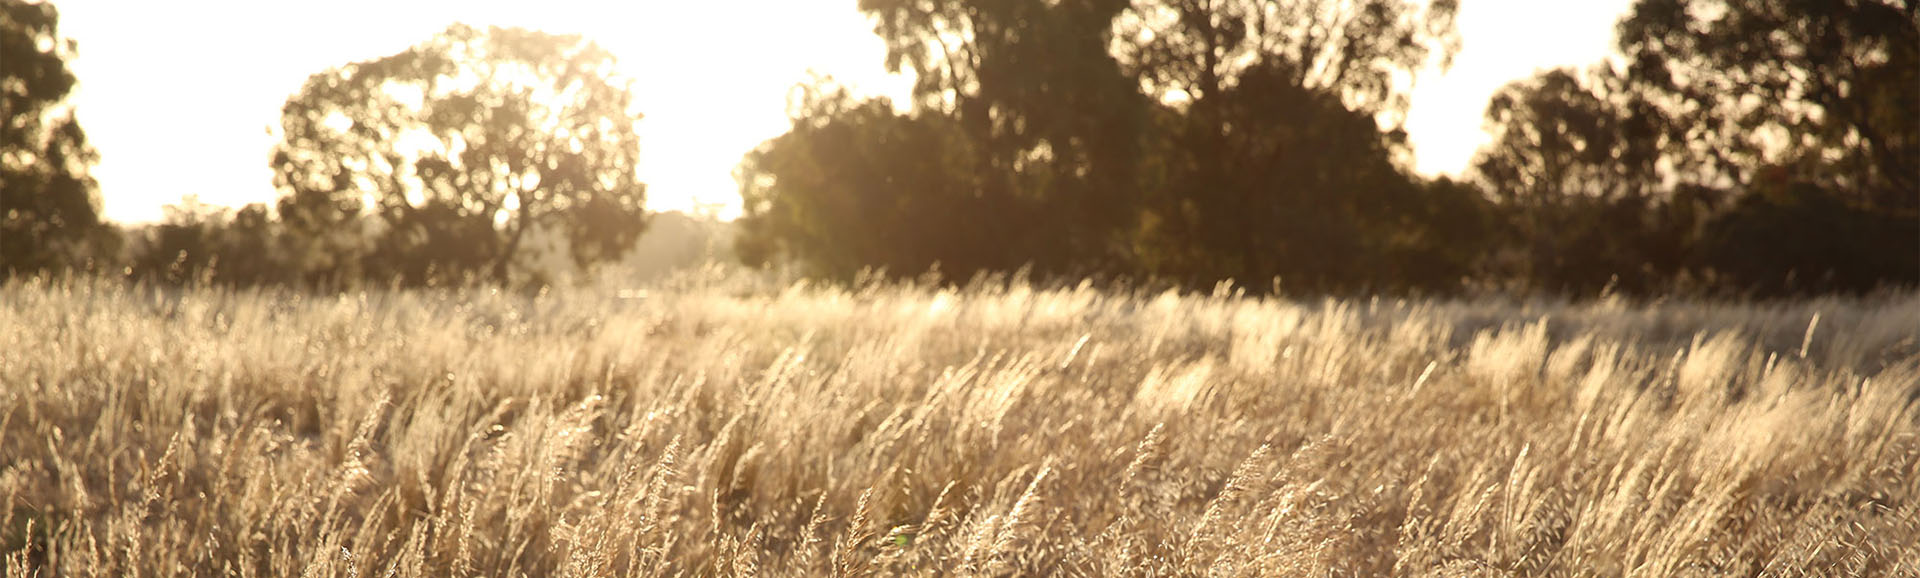 Paddock with golden grass at dawn